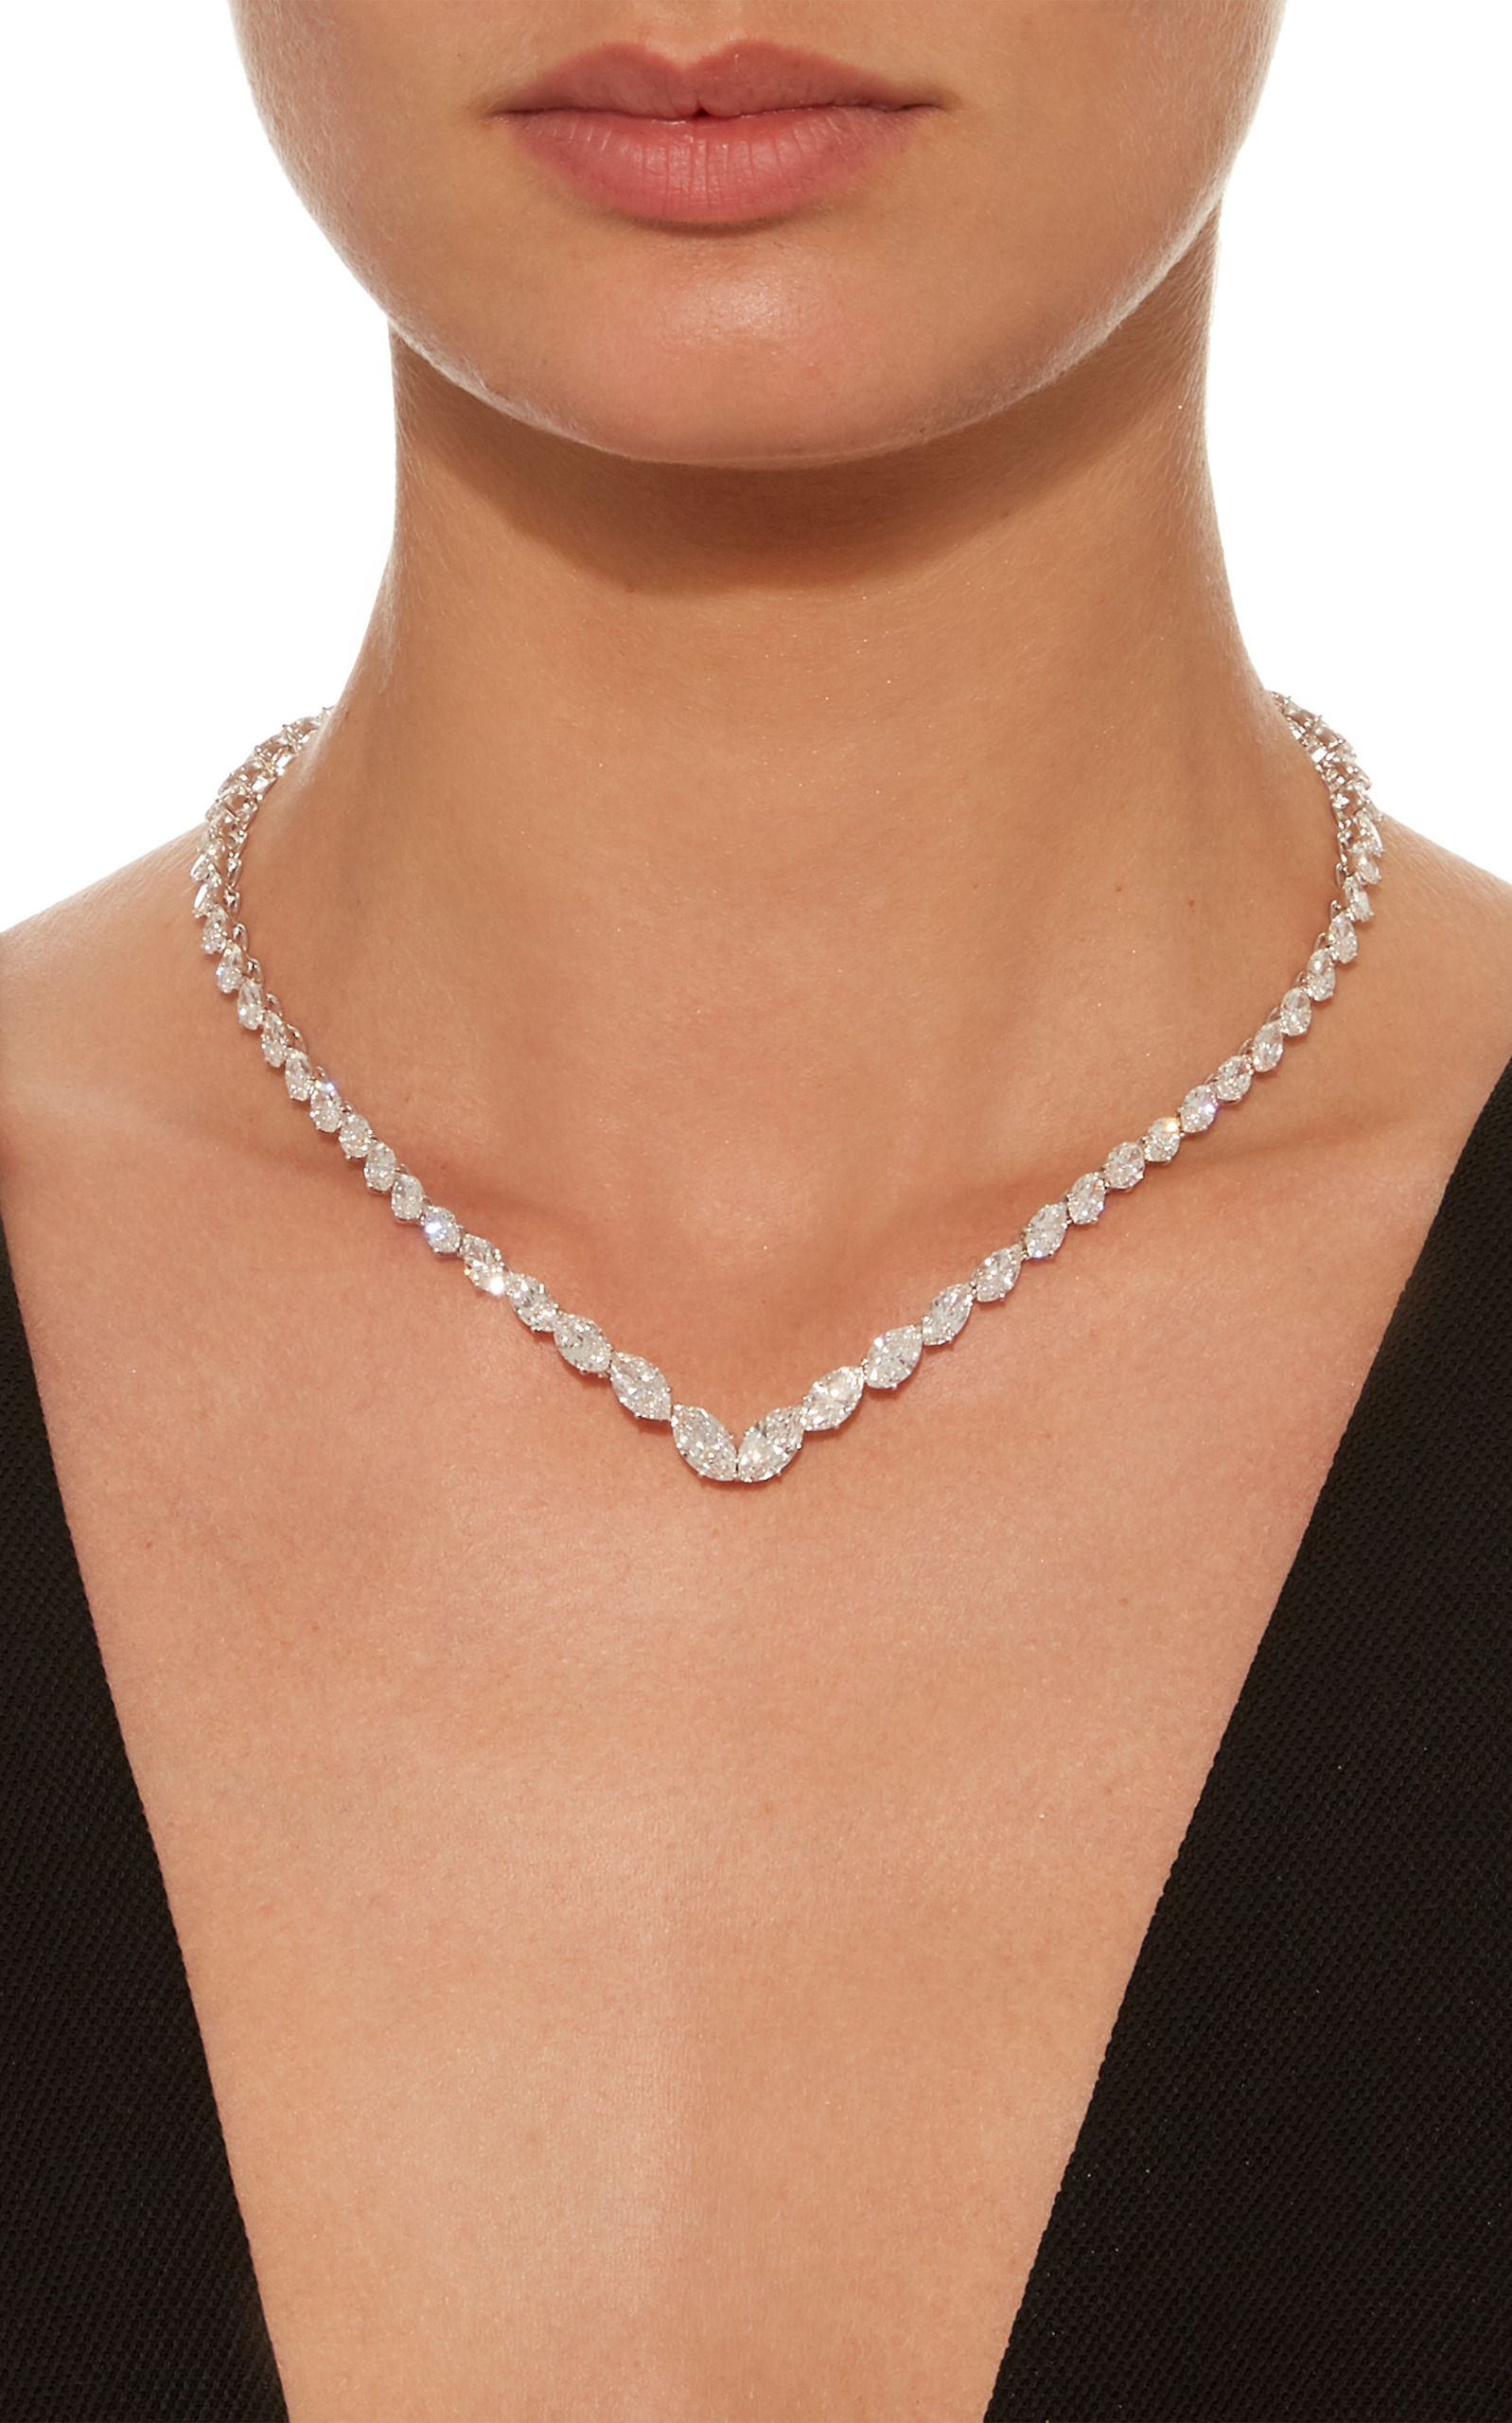 tw the ct marquise white gold necklace leo stone collection diamond